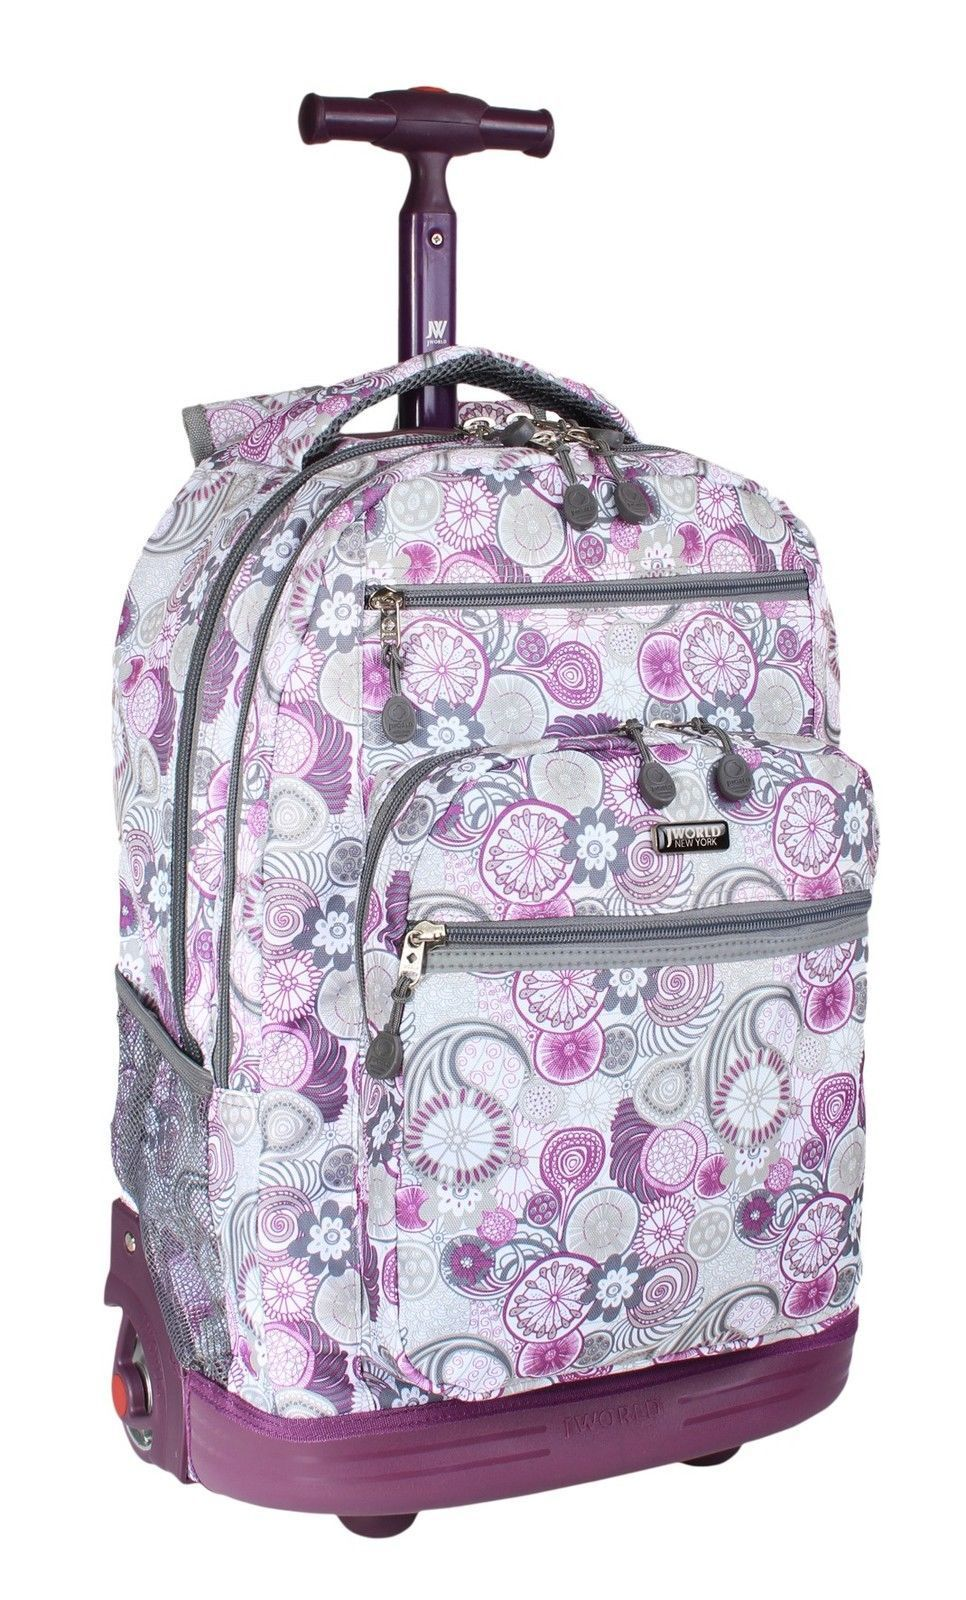 Top 10 School Bags for Girls | eBay